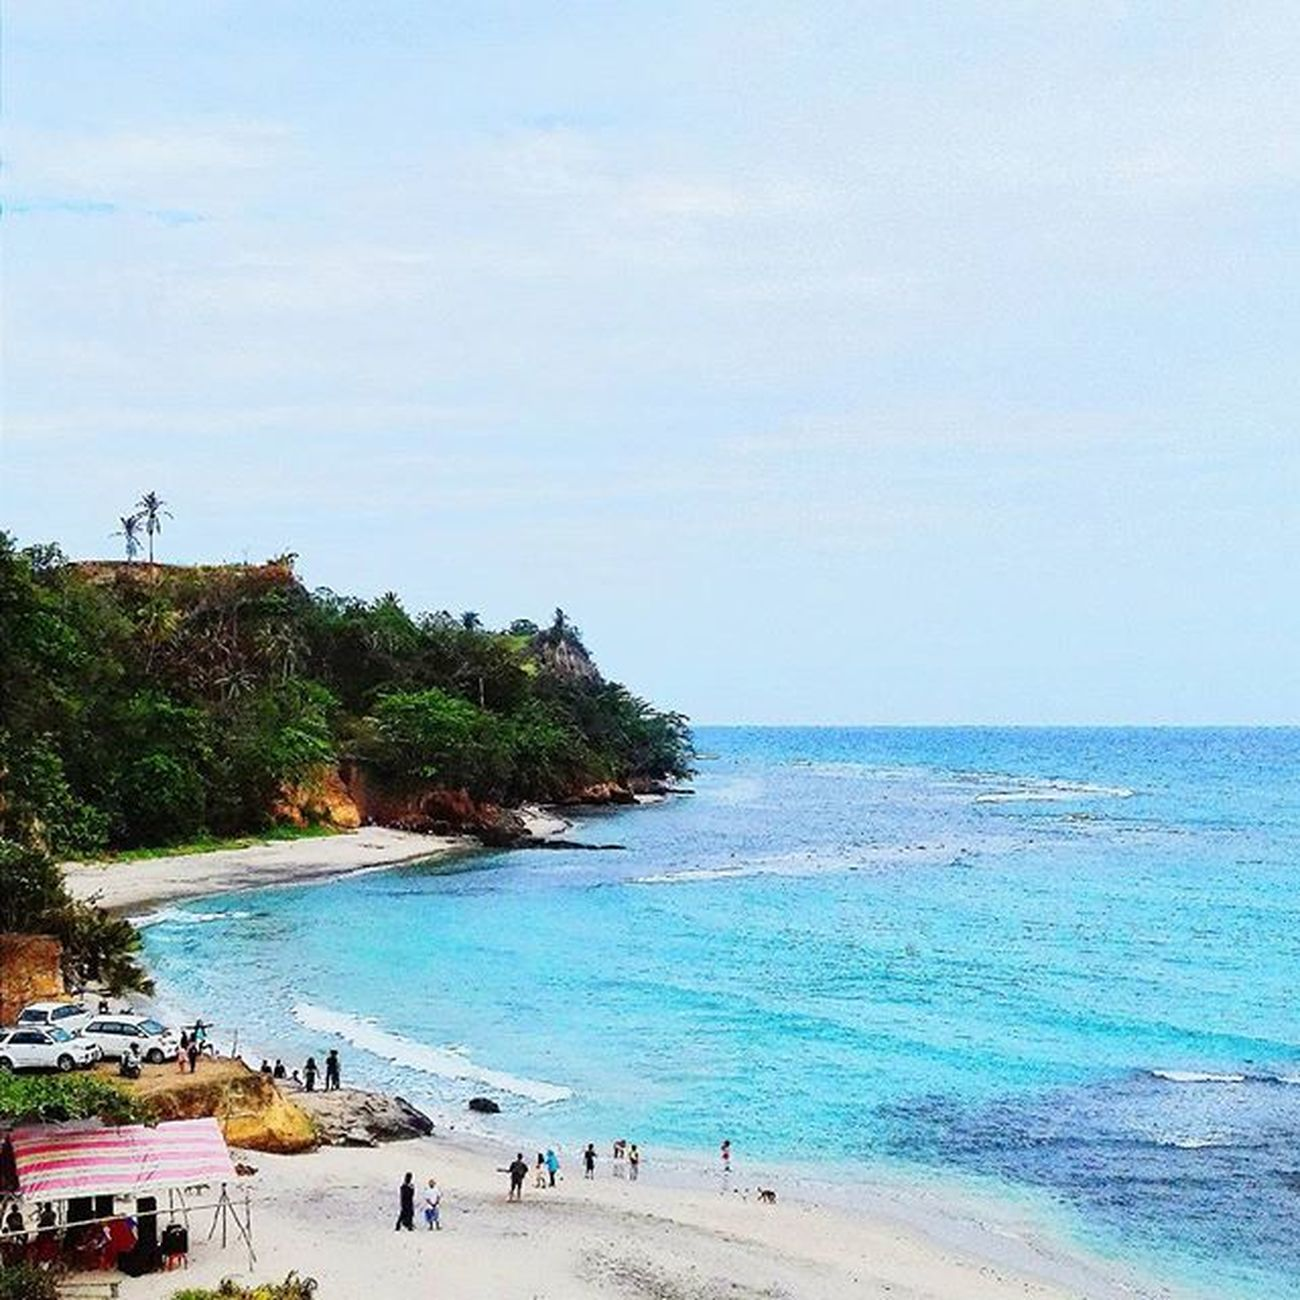 people say, this place is bali. well... I think it's true, but you know this is the mahembang beach. soo I'll say this is the second place of bali. Beach Mylife Instalike Likes Instagrammers Instagram Likeforlike Instagood Beautiful Beautifulmoment Second Place Of Bali